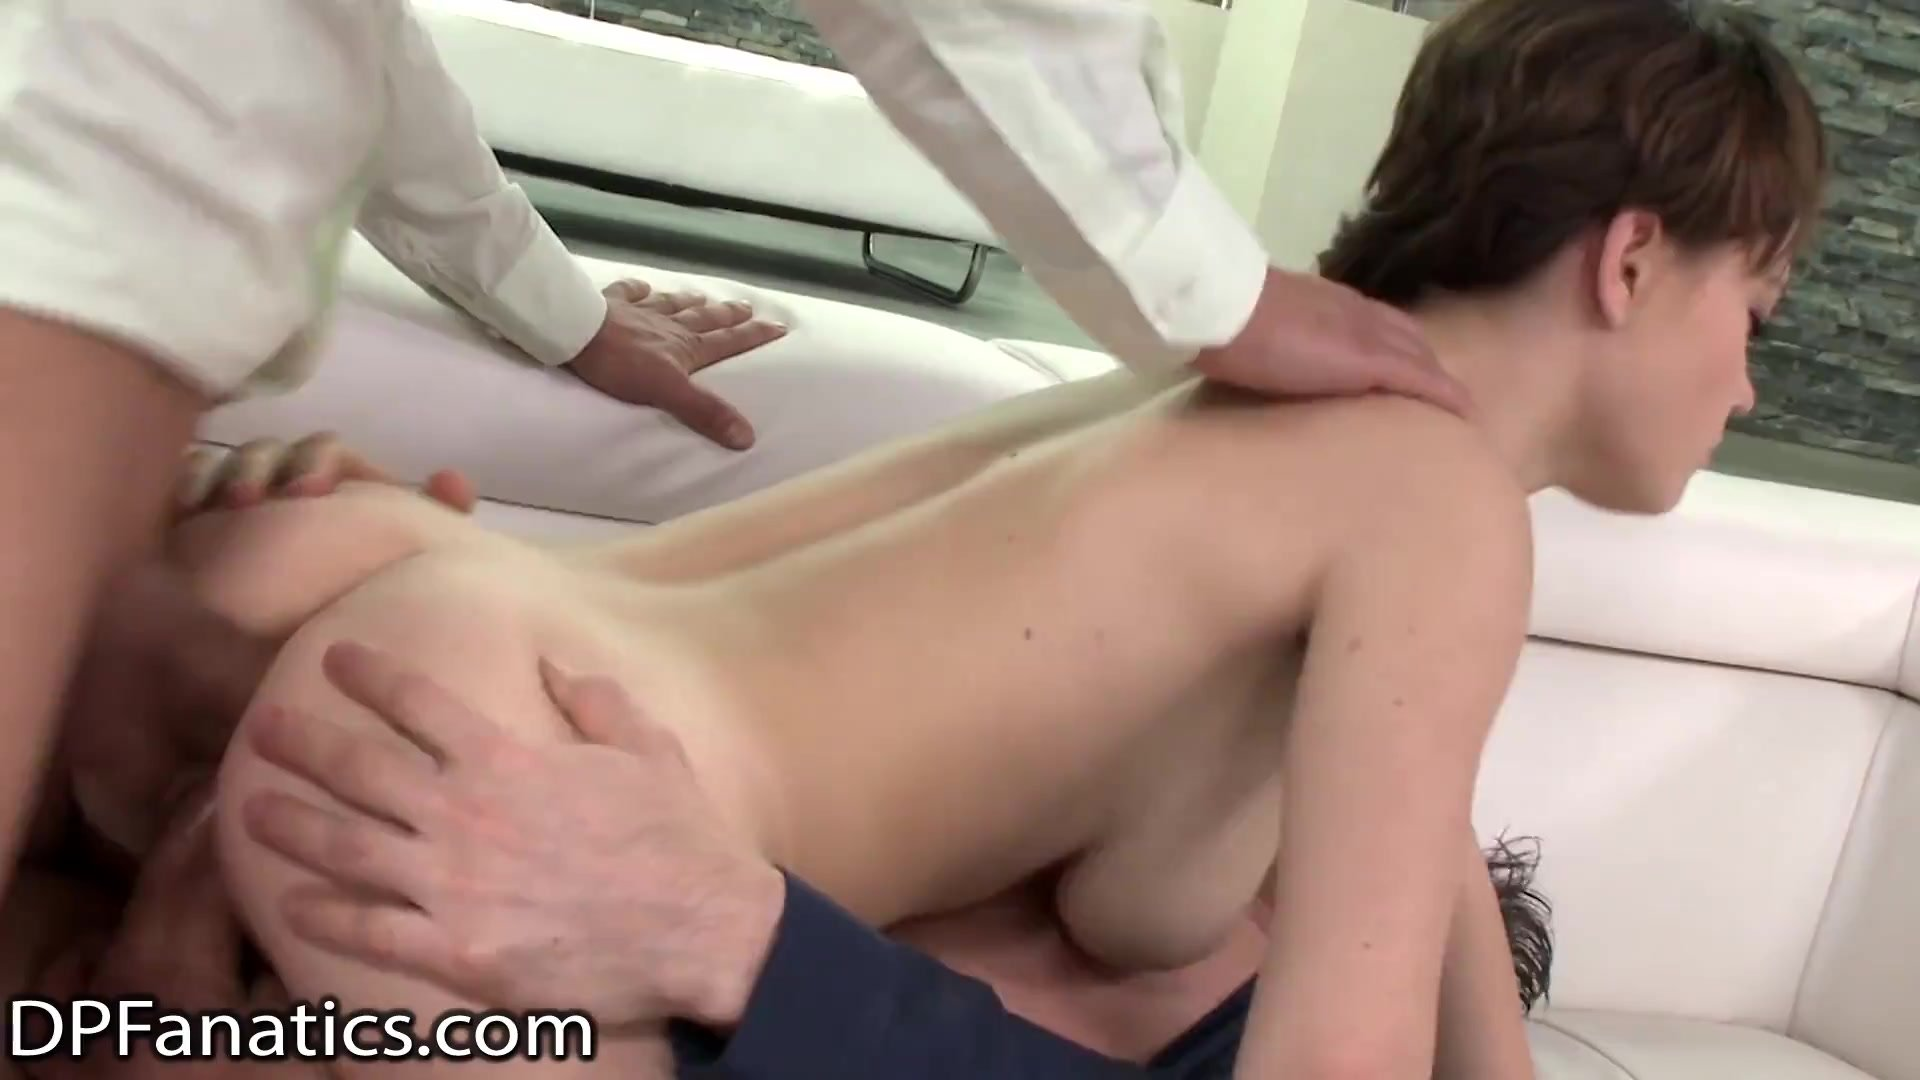 DPFanatics Young Babe Gets Double-Banged To Get Better Grades